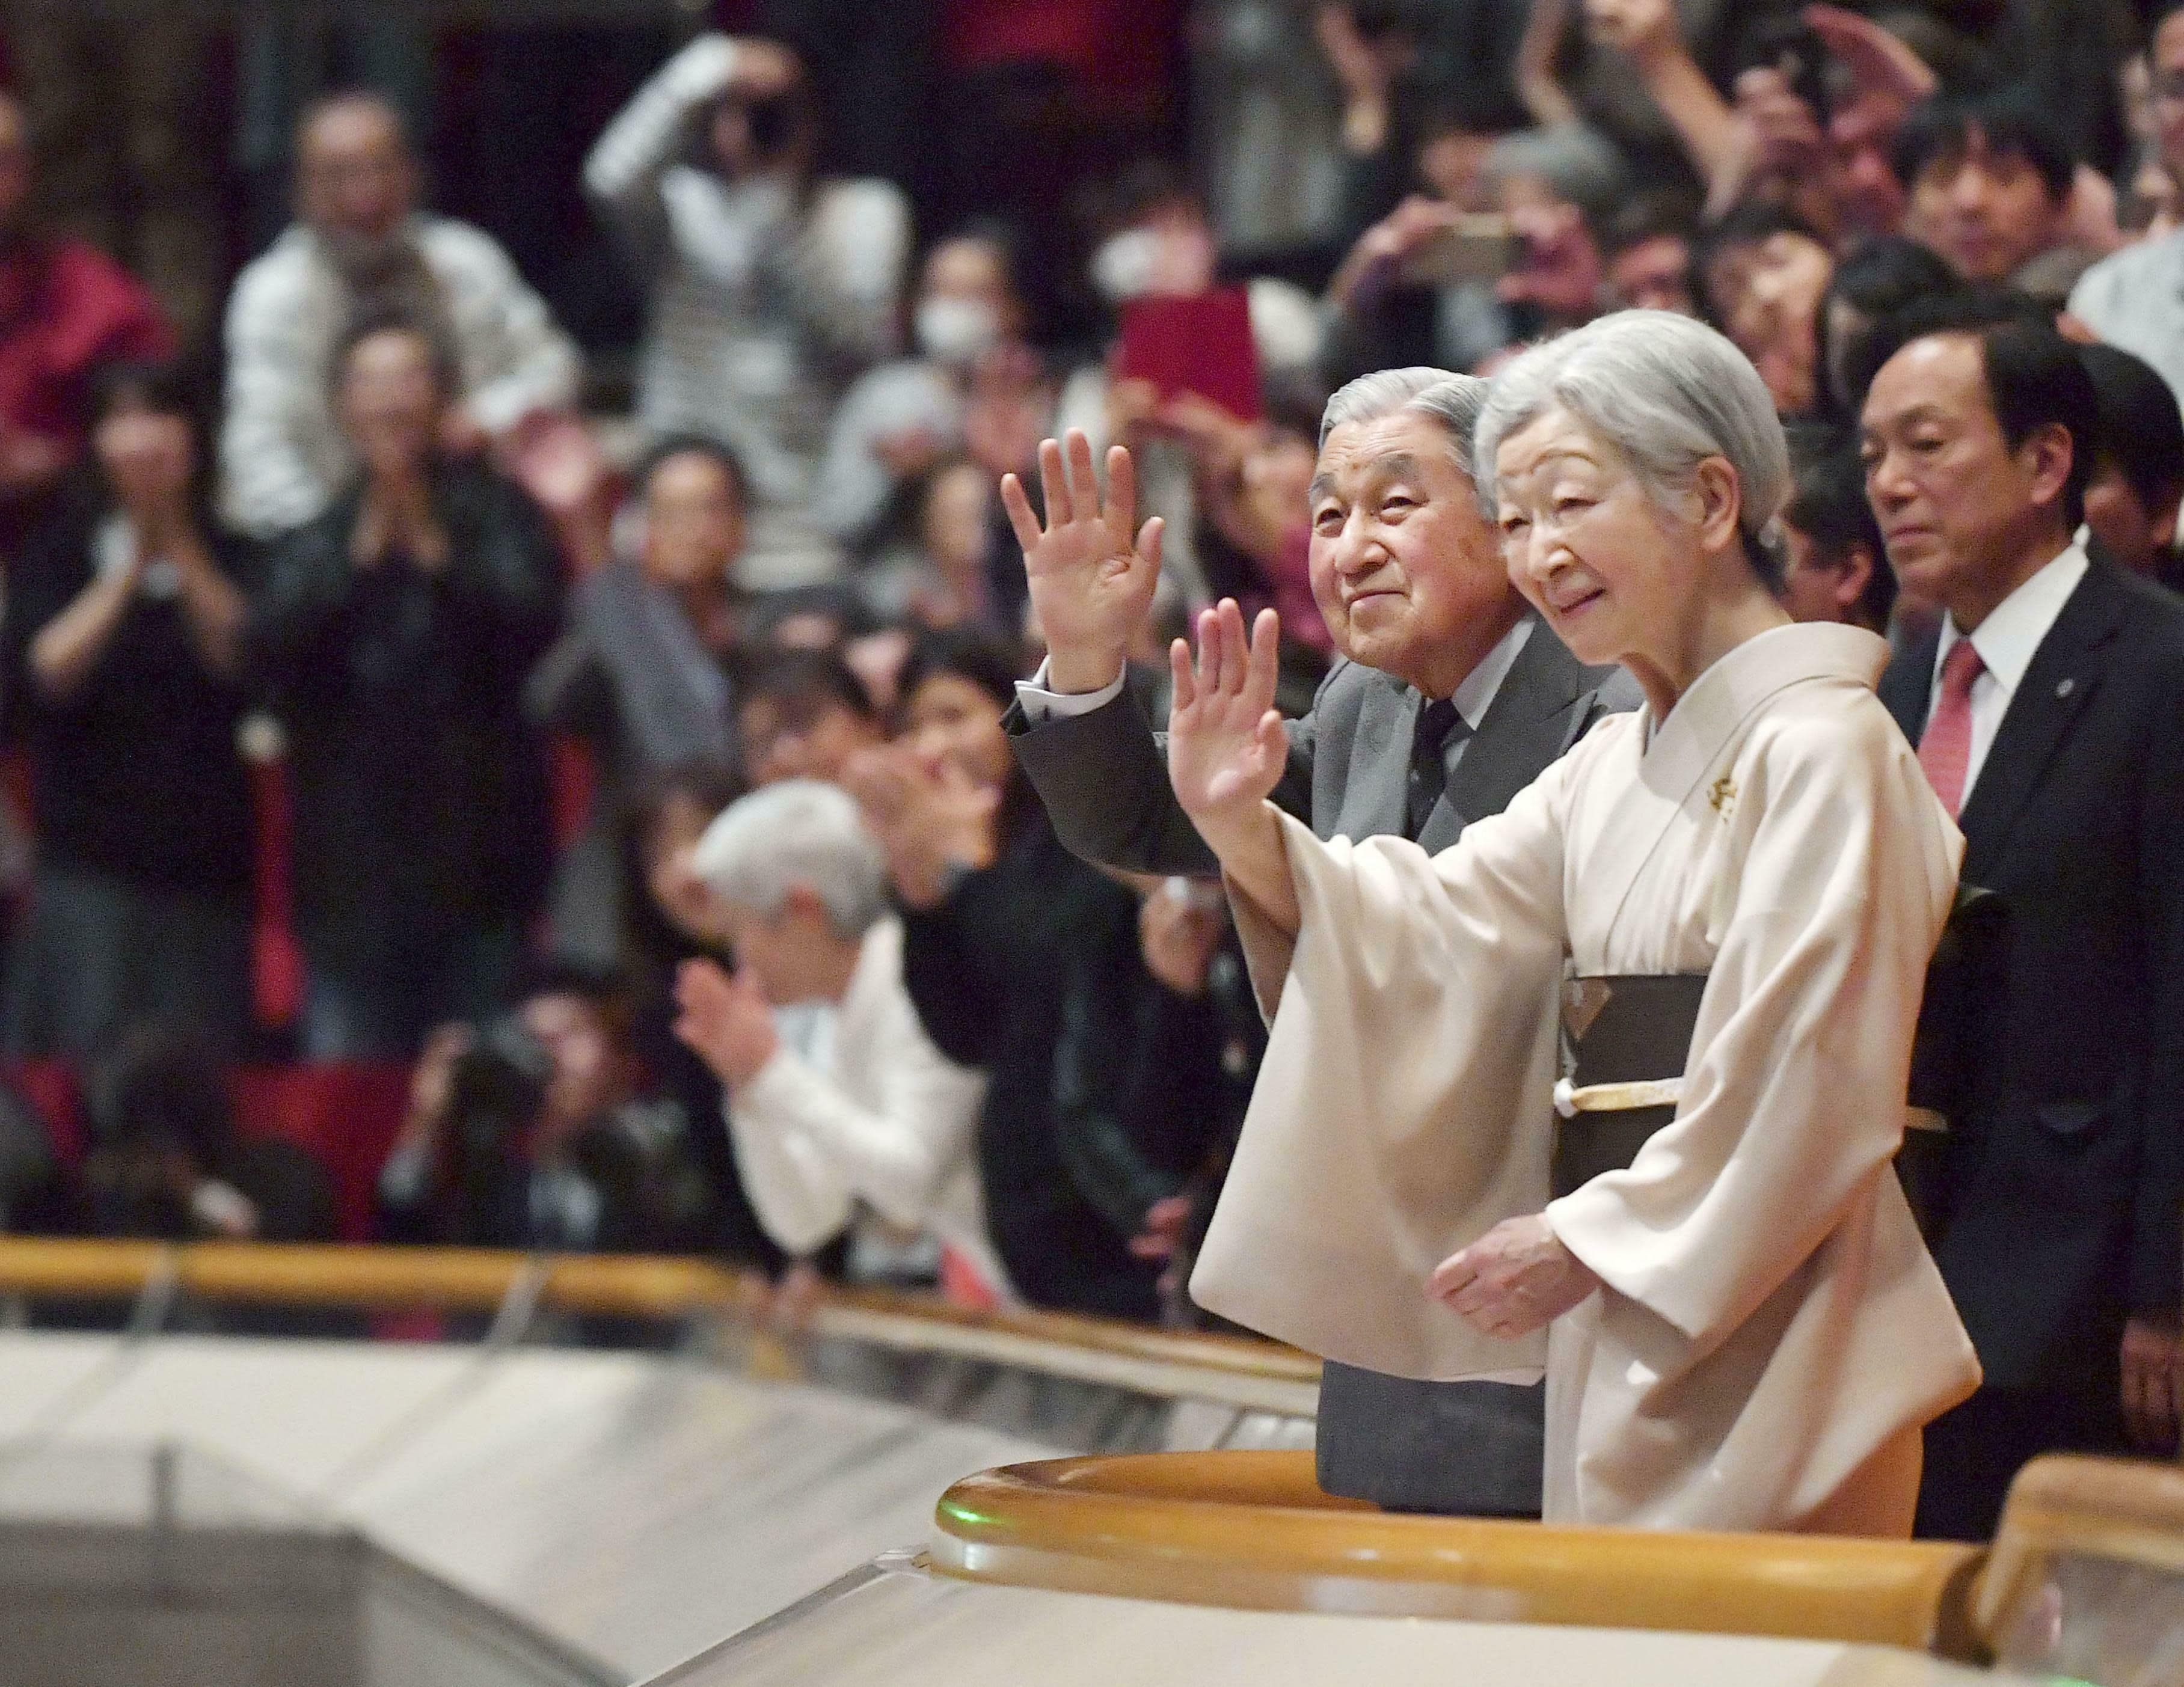 In this Jan. 20, 2019, photo, Japanese Emperor Akihito, front left, and Empress Michiko, front right, acknowledge the crowd during their visit to the New Year Grand Sumo Tournament at Ryogoku Kokugikan in Tokyo. The love many in Japan feel for Akihito was on full display when he made his last official visit to the winter sumo tournament earlier this year. A huge crowd of people leapt to their feet, whooping and grinning as they held up babies and waved flags.(Kyodo News via AP)